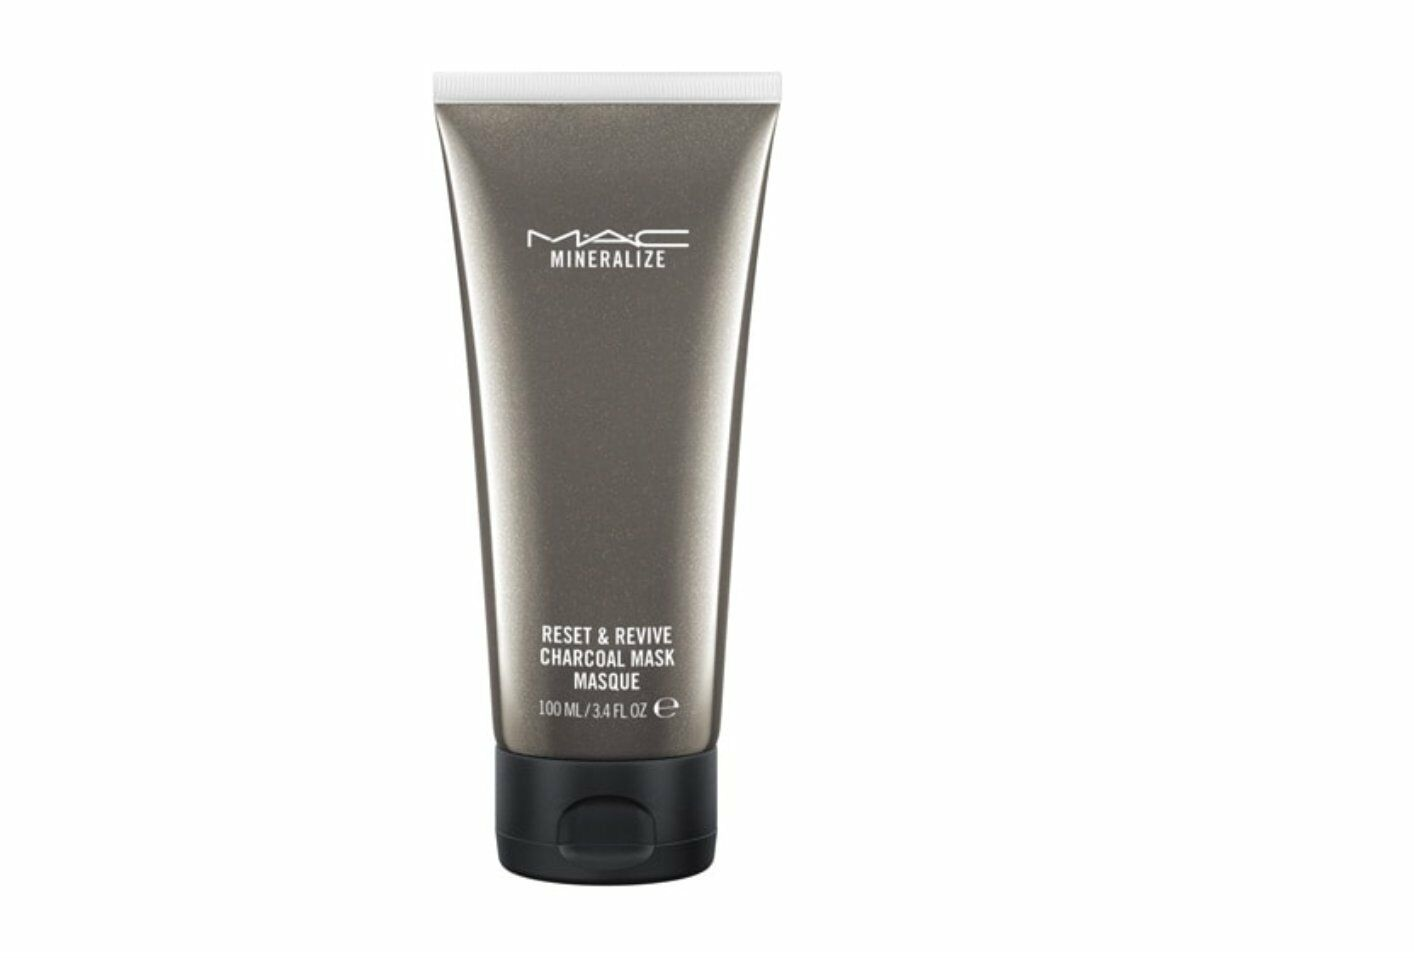 MAC MINERALIZE RESET & REVIVE CHARCOAL MASK 3.4 OZ New in Bo